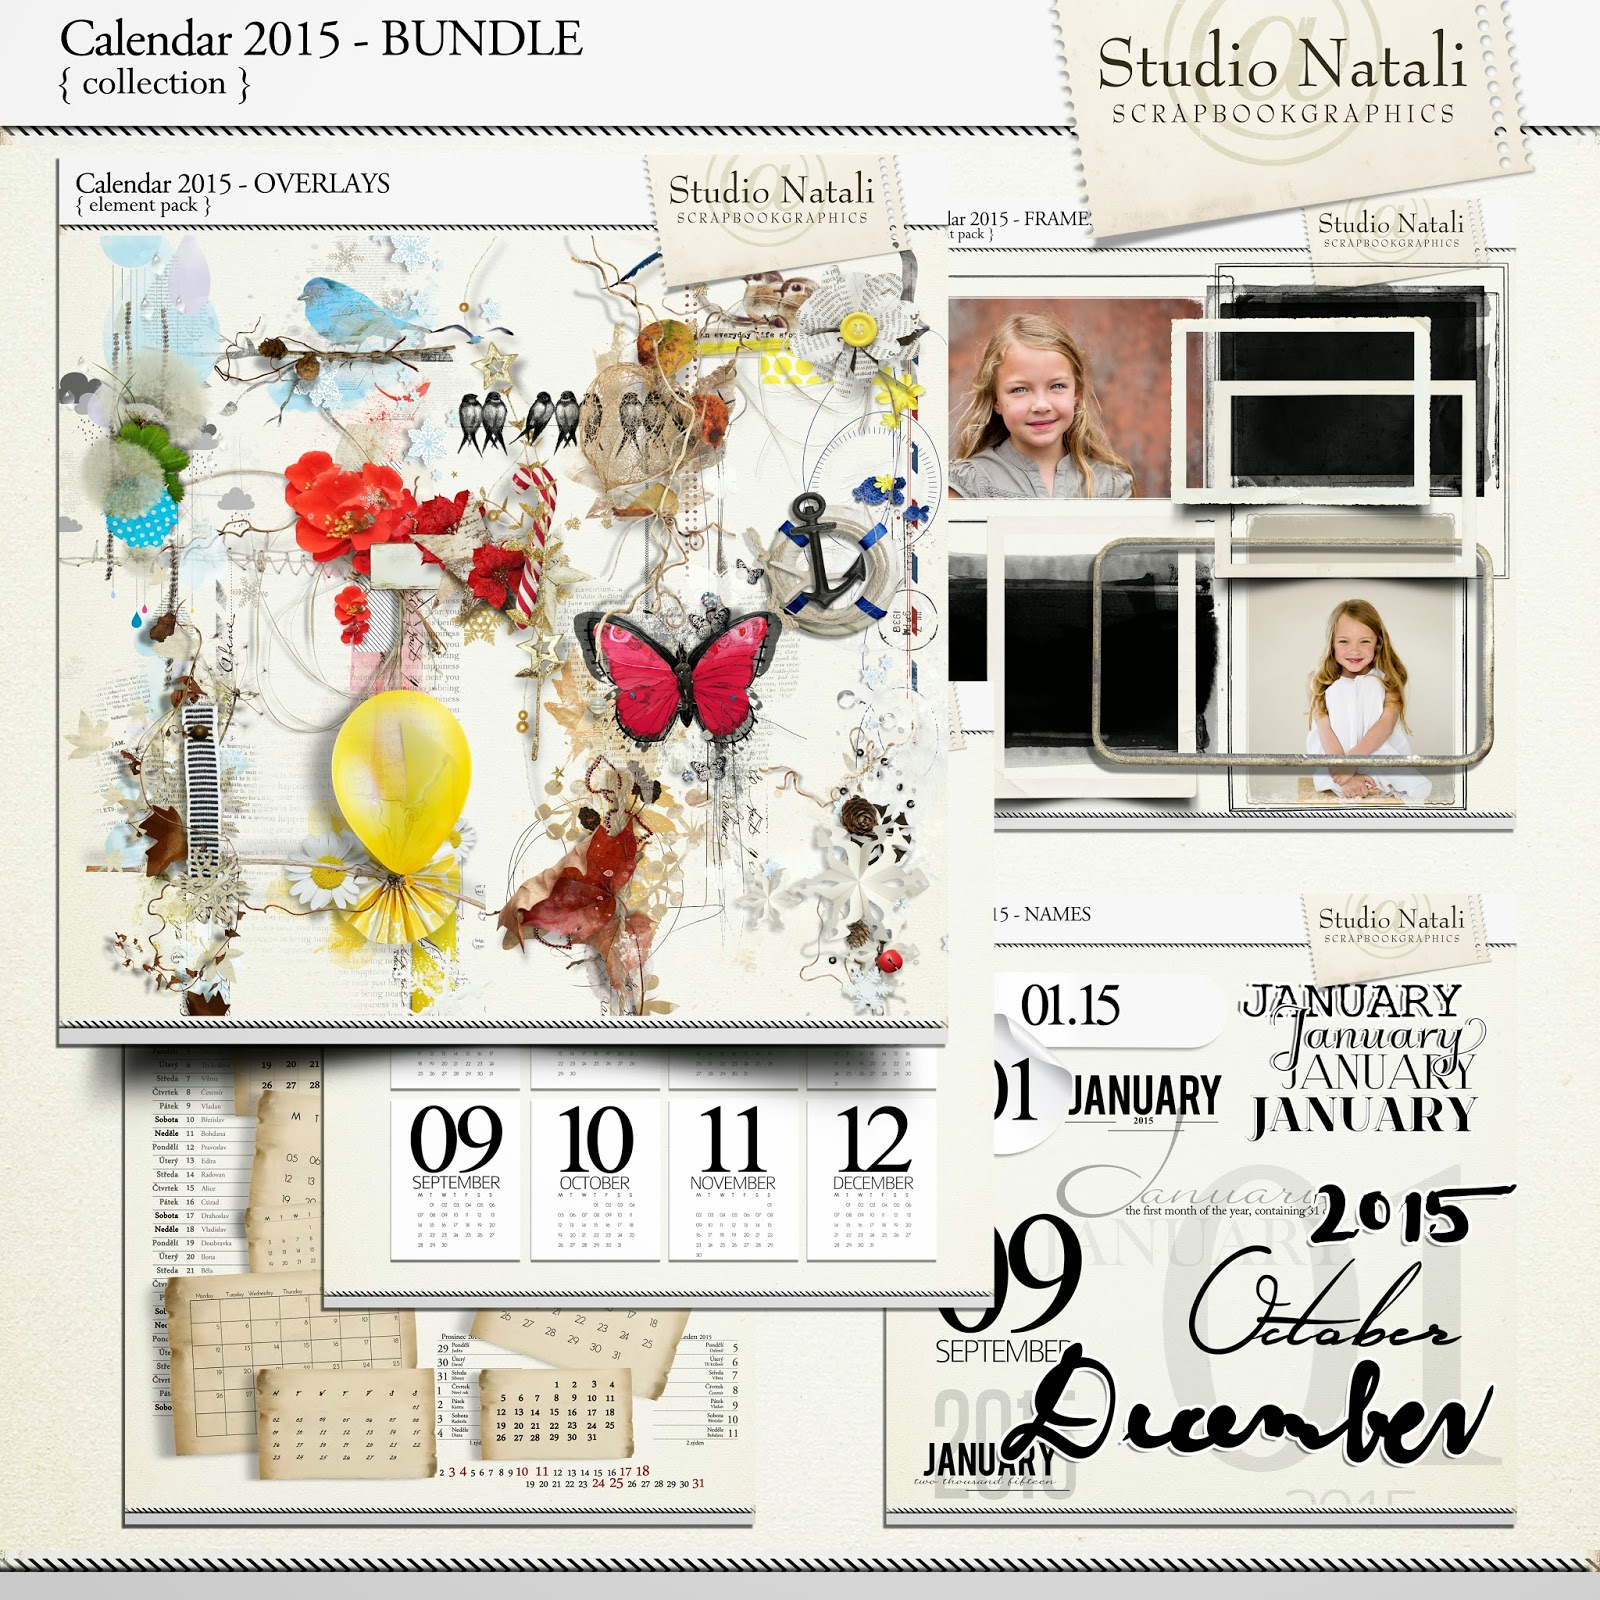 http://shop.scrapbookgraphics.com/Calendar-2015-Collection.html